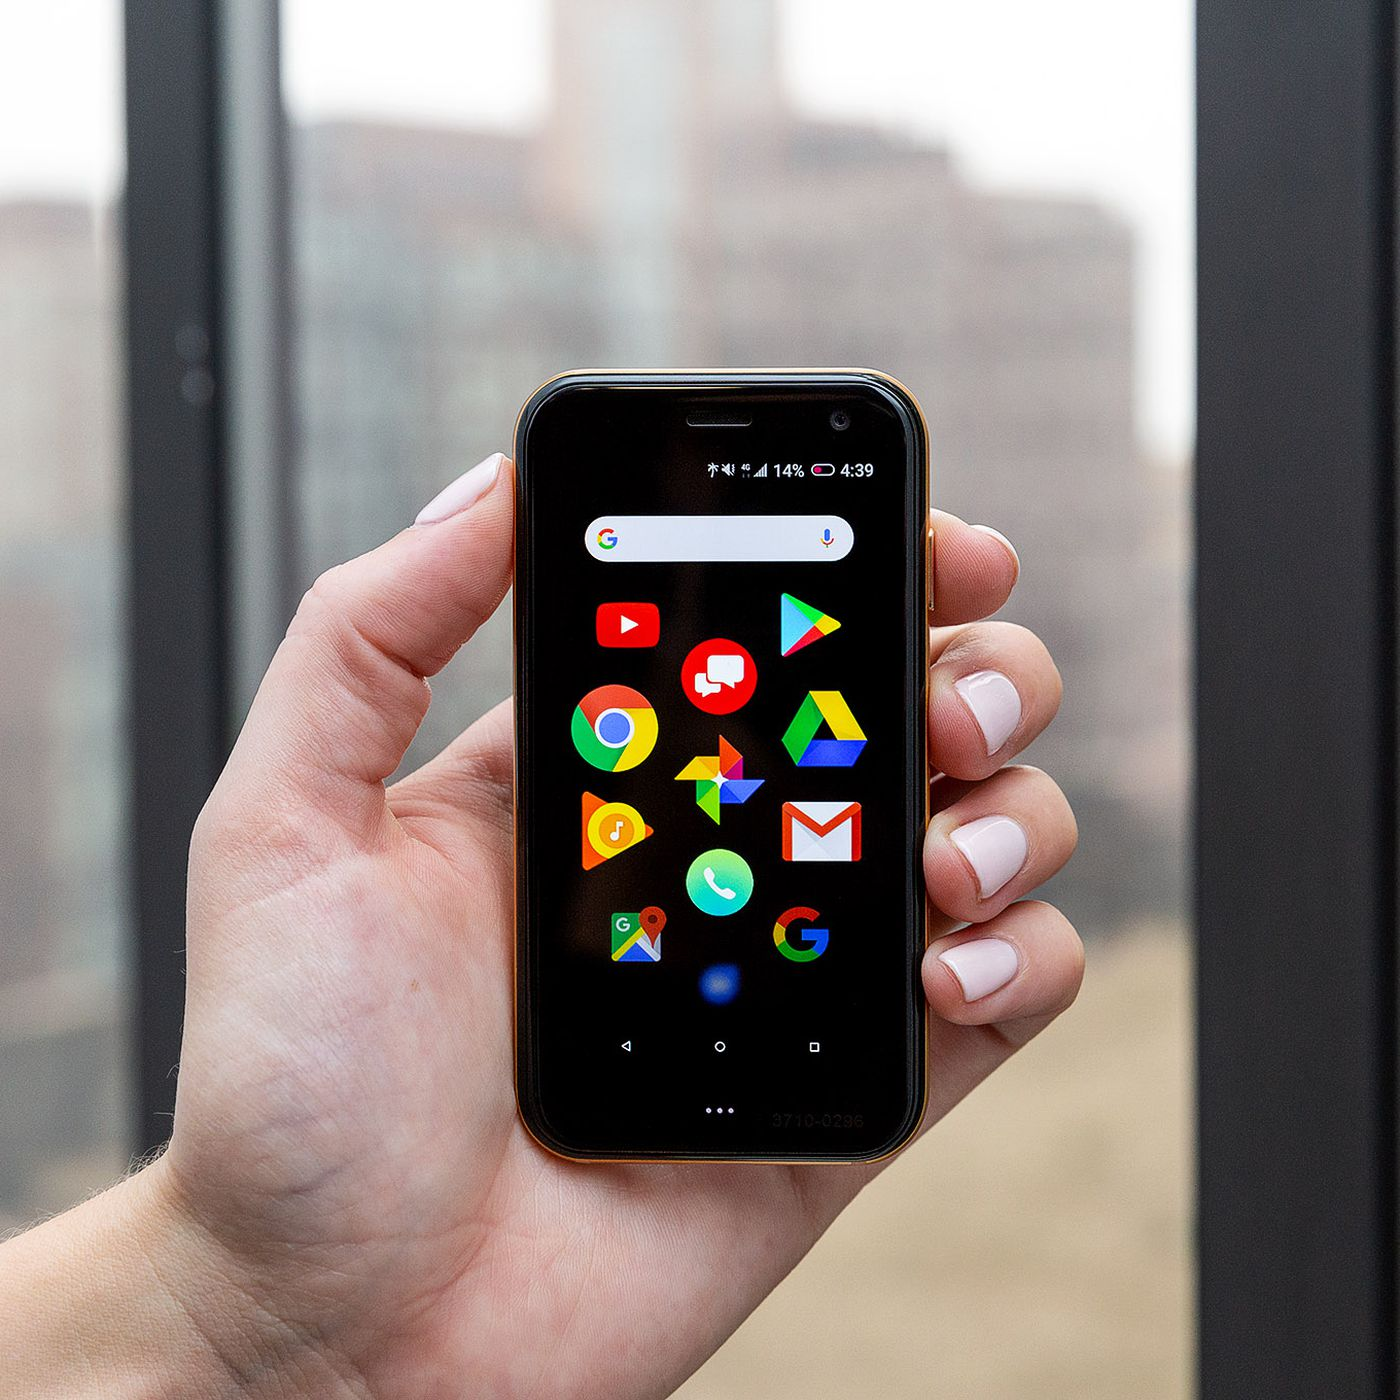 16a4394d735 The new Palm is a tiny phone to keep you away from your phone - The ...